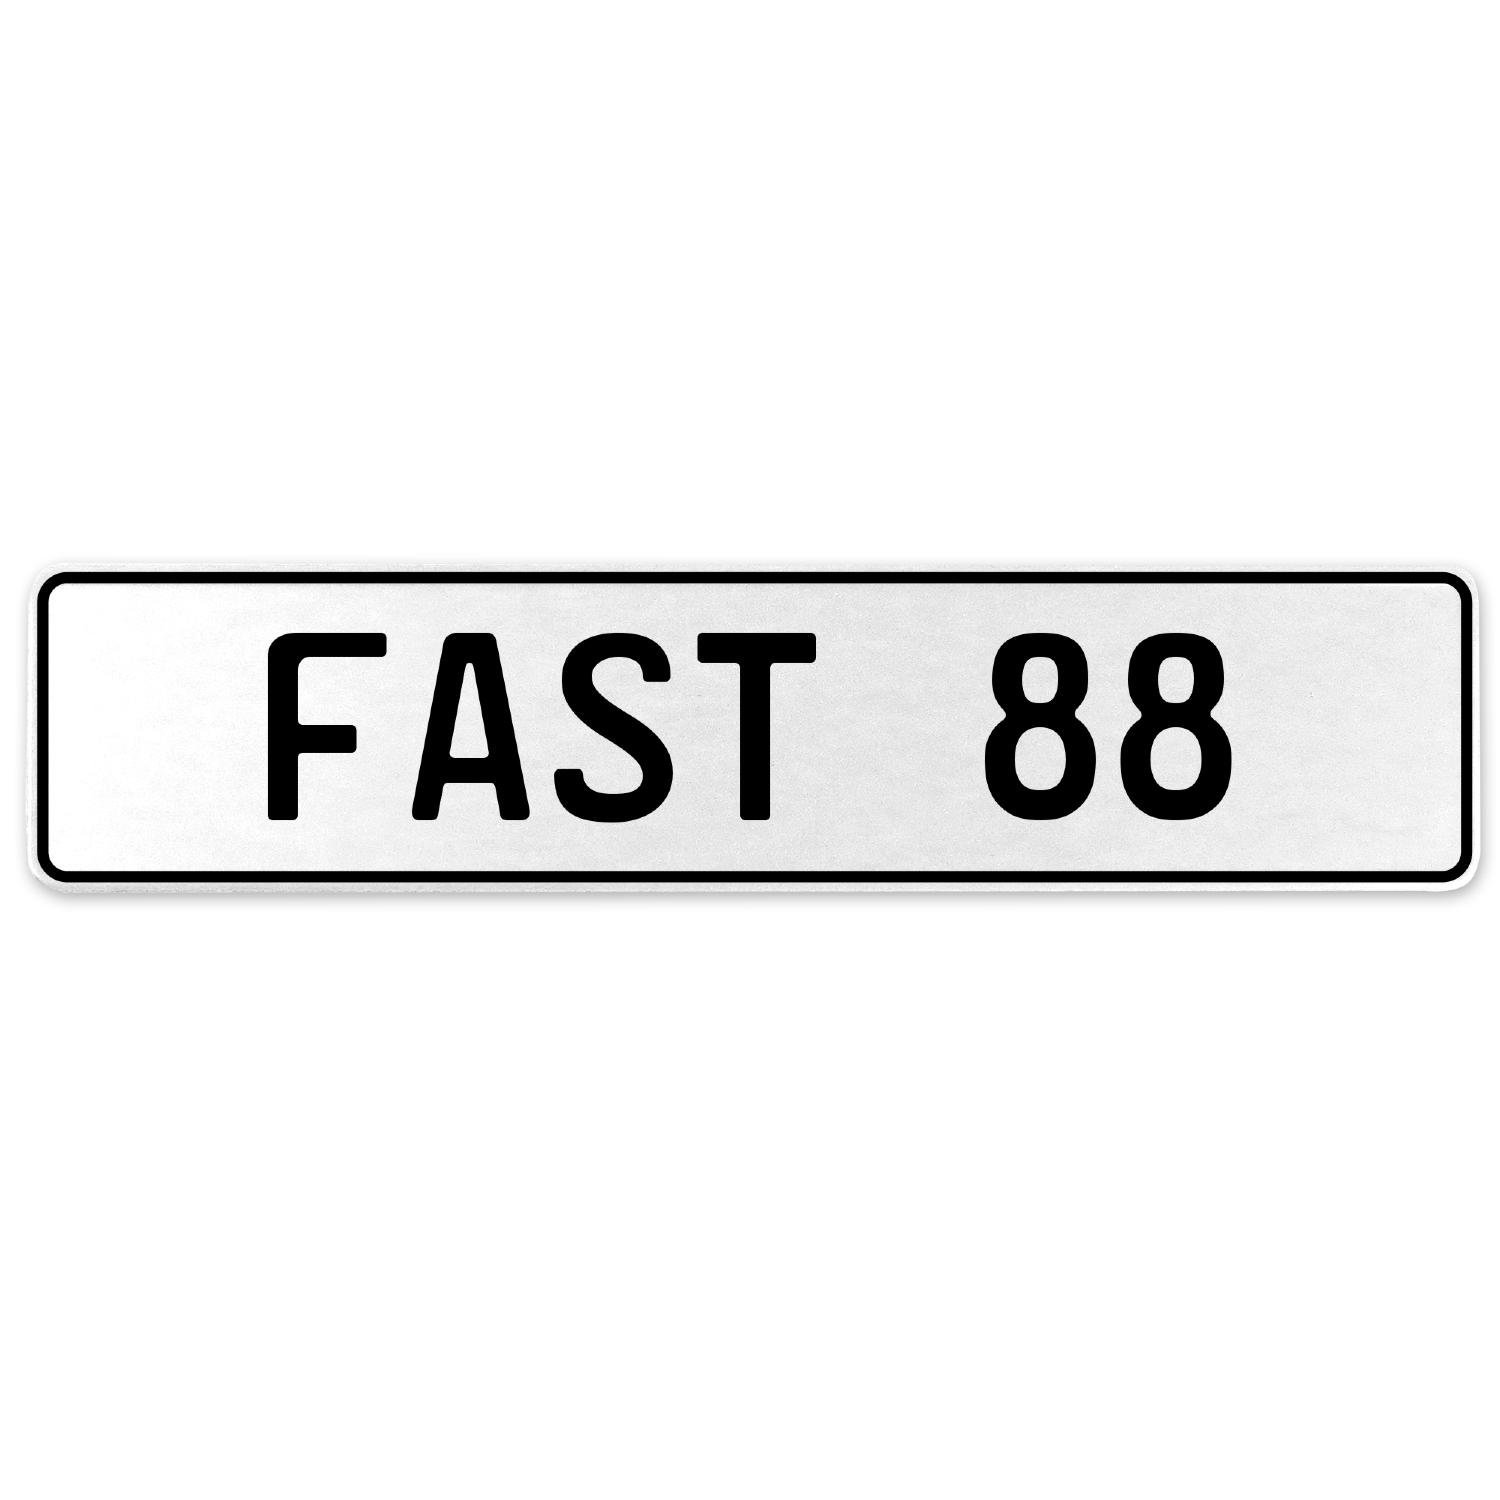 Vintage Parts 557358 Fast 88 White Stamped Aluminum European License Plate